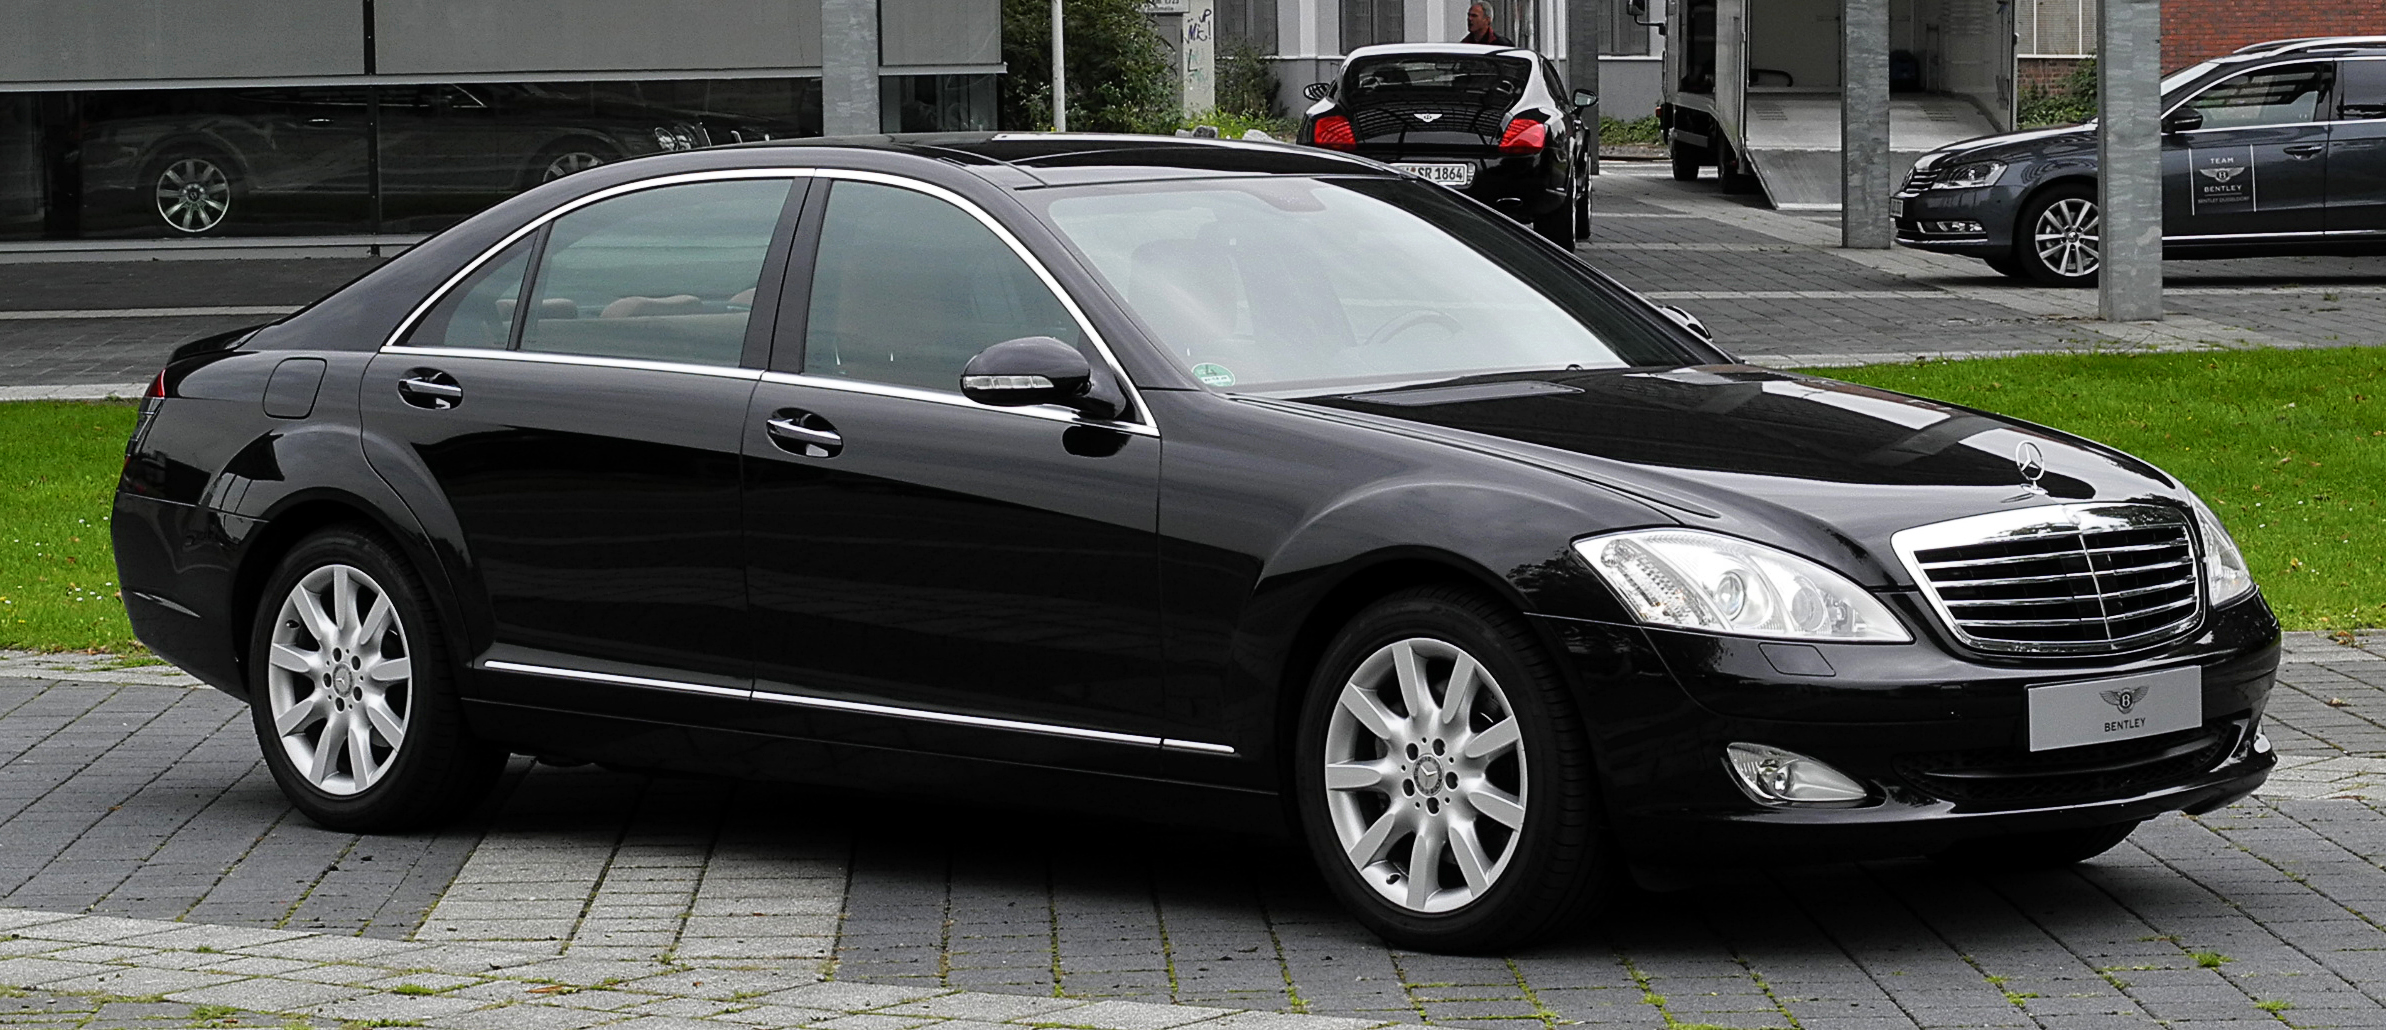 Mercedes-benz cdi photo - 6